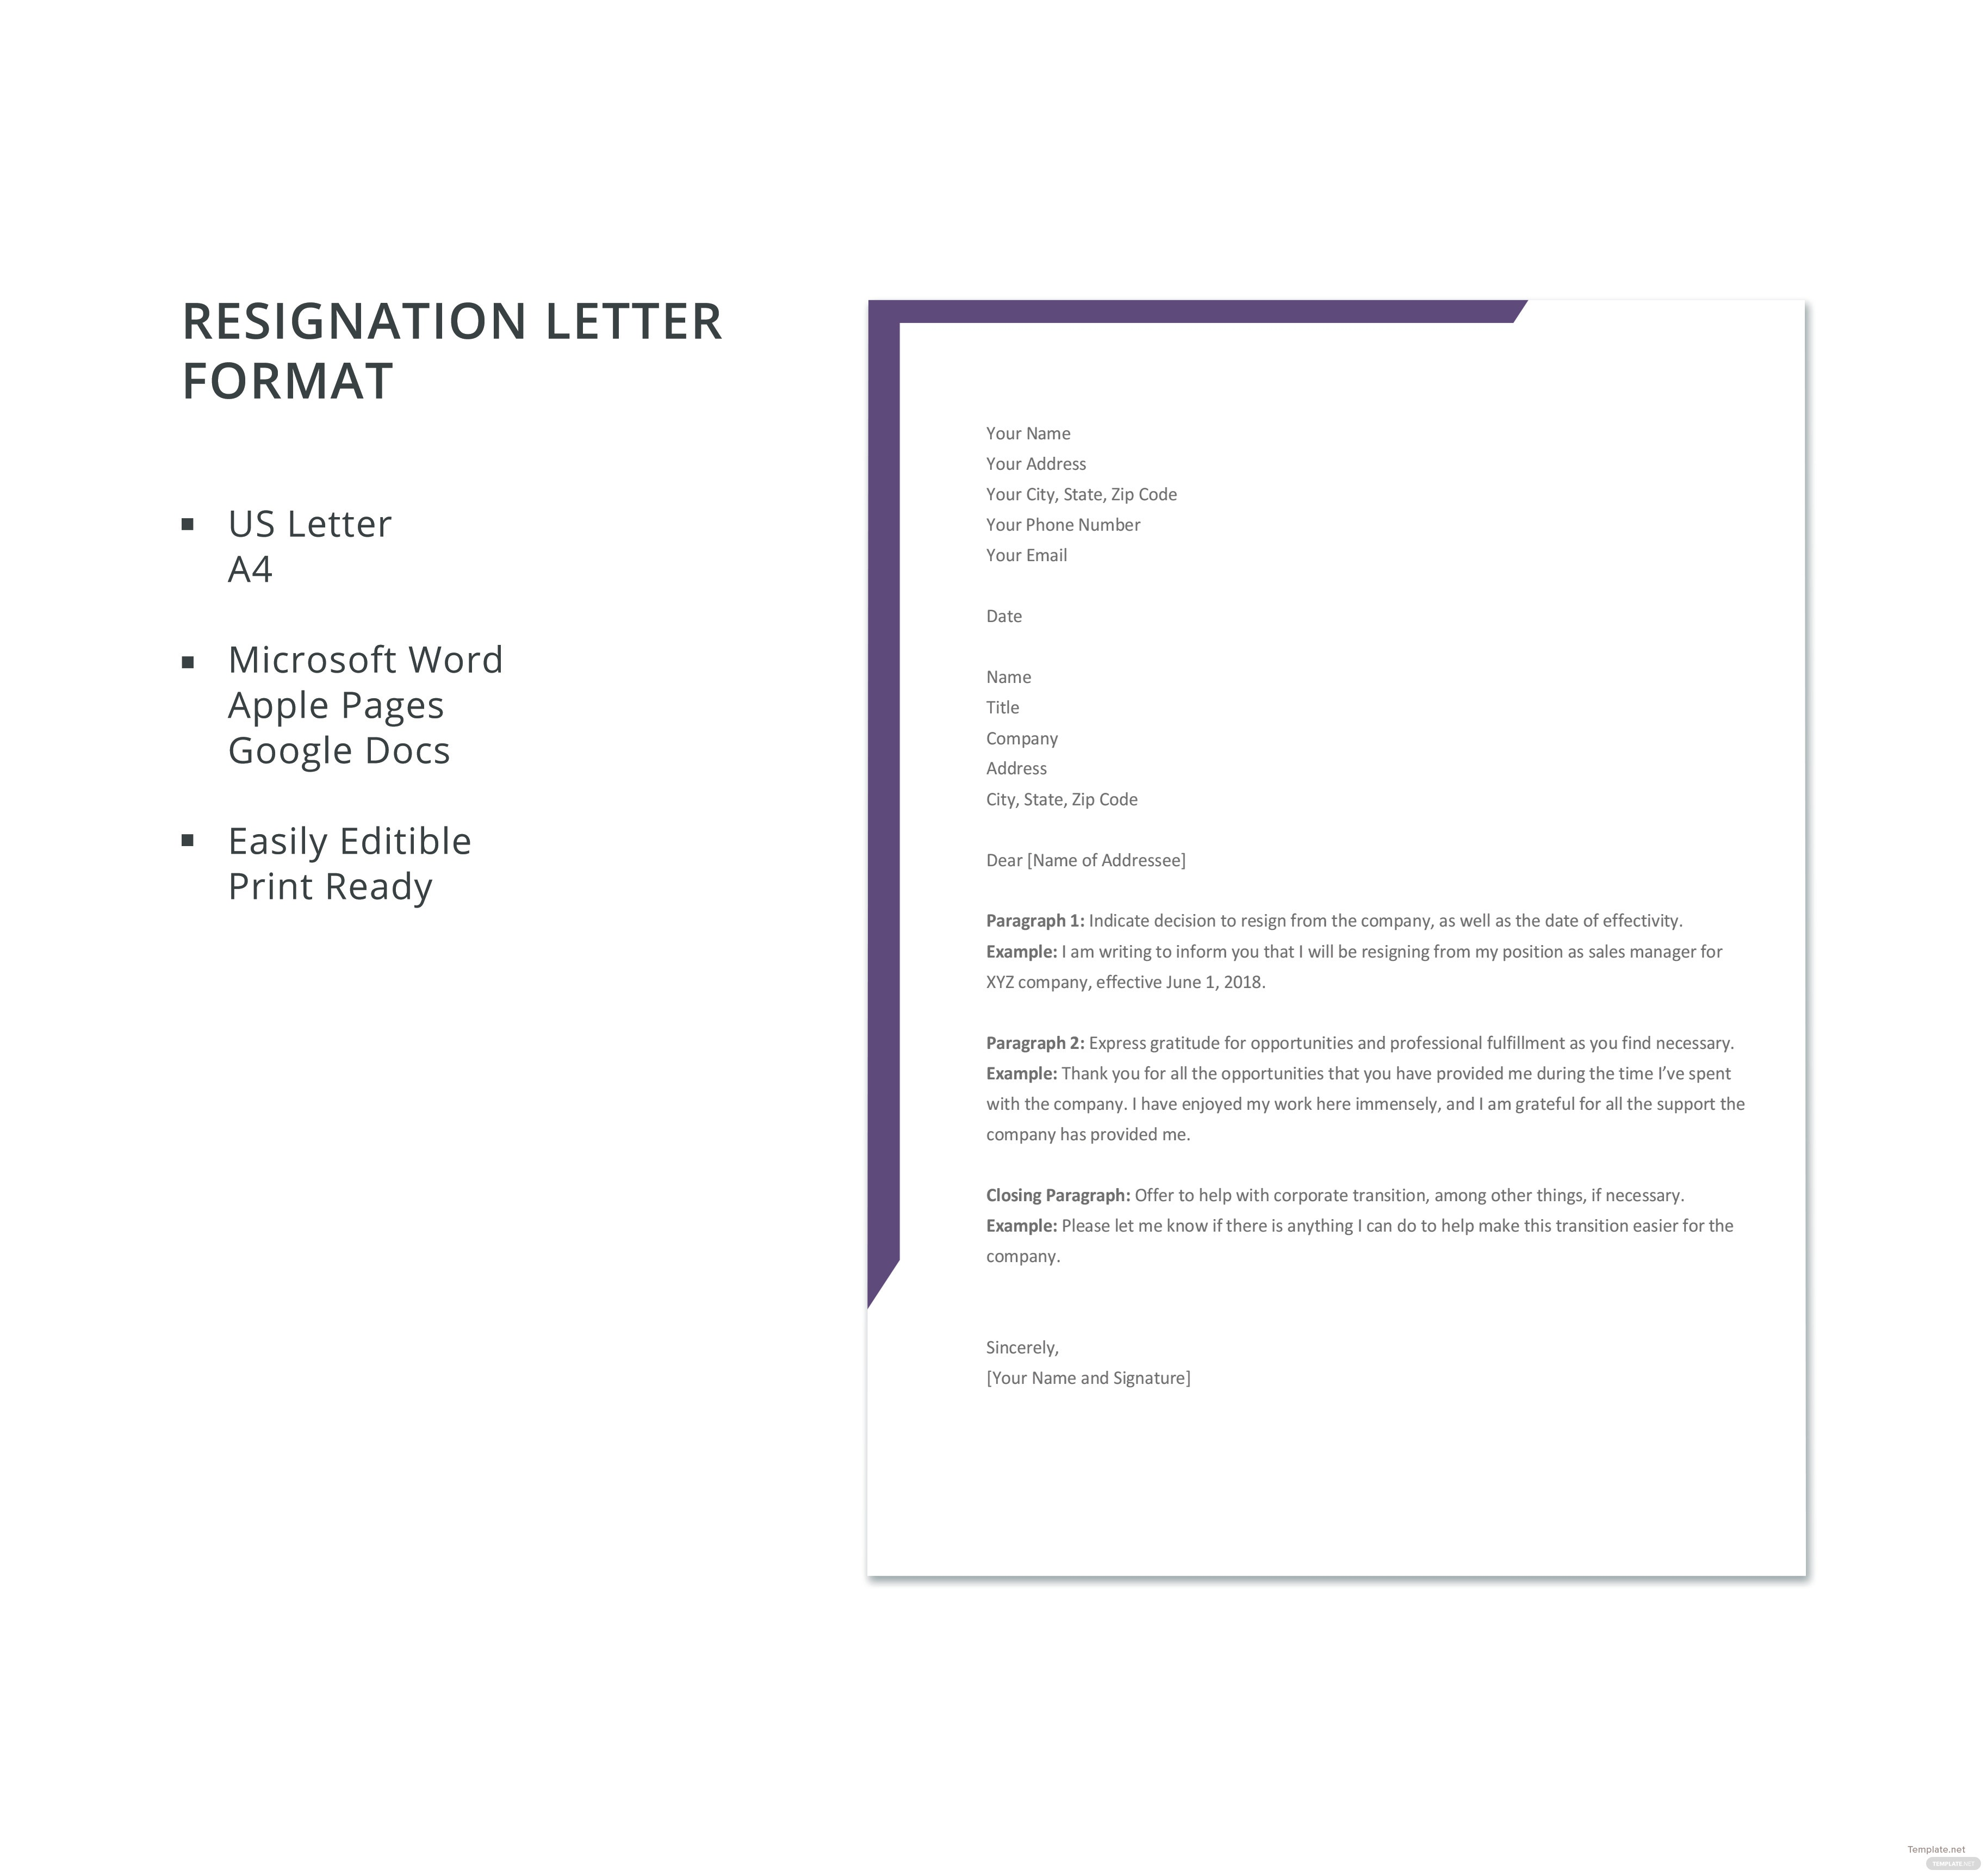 Free resignation letter format in microsoft word apple pages click to see full template resignation letter format spiritdancerdesigns Gallery